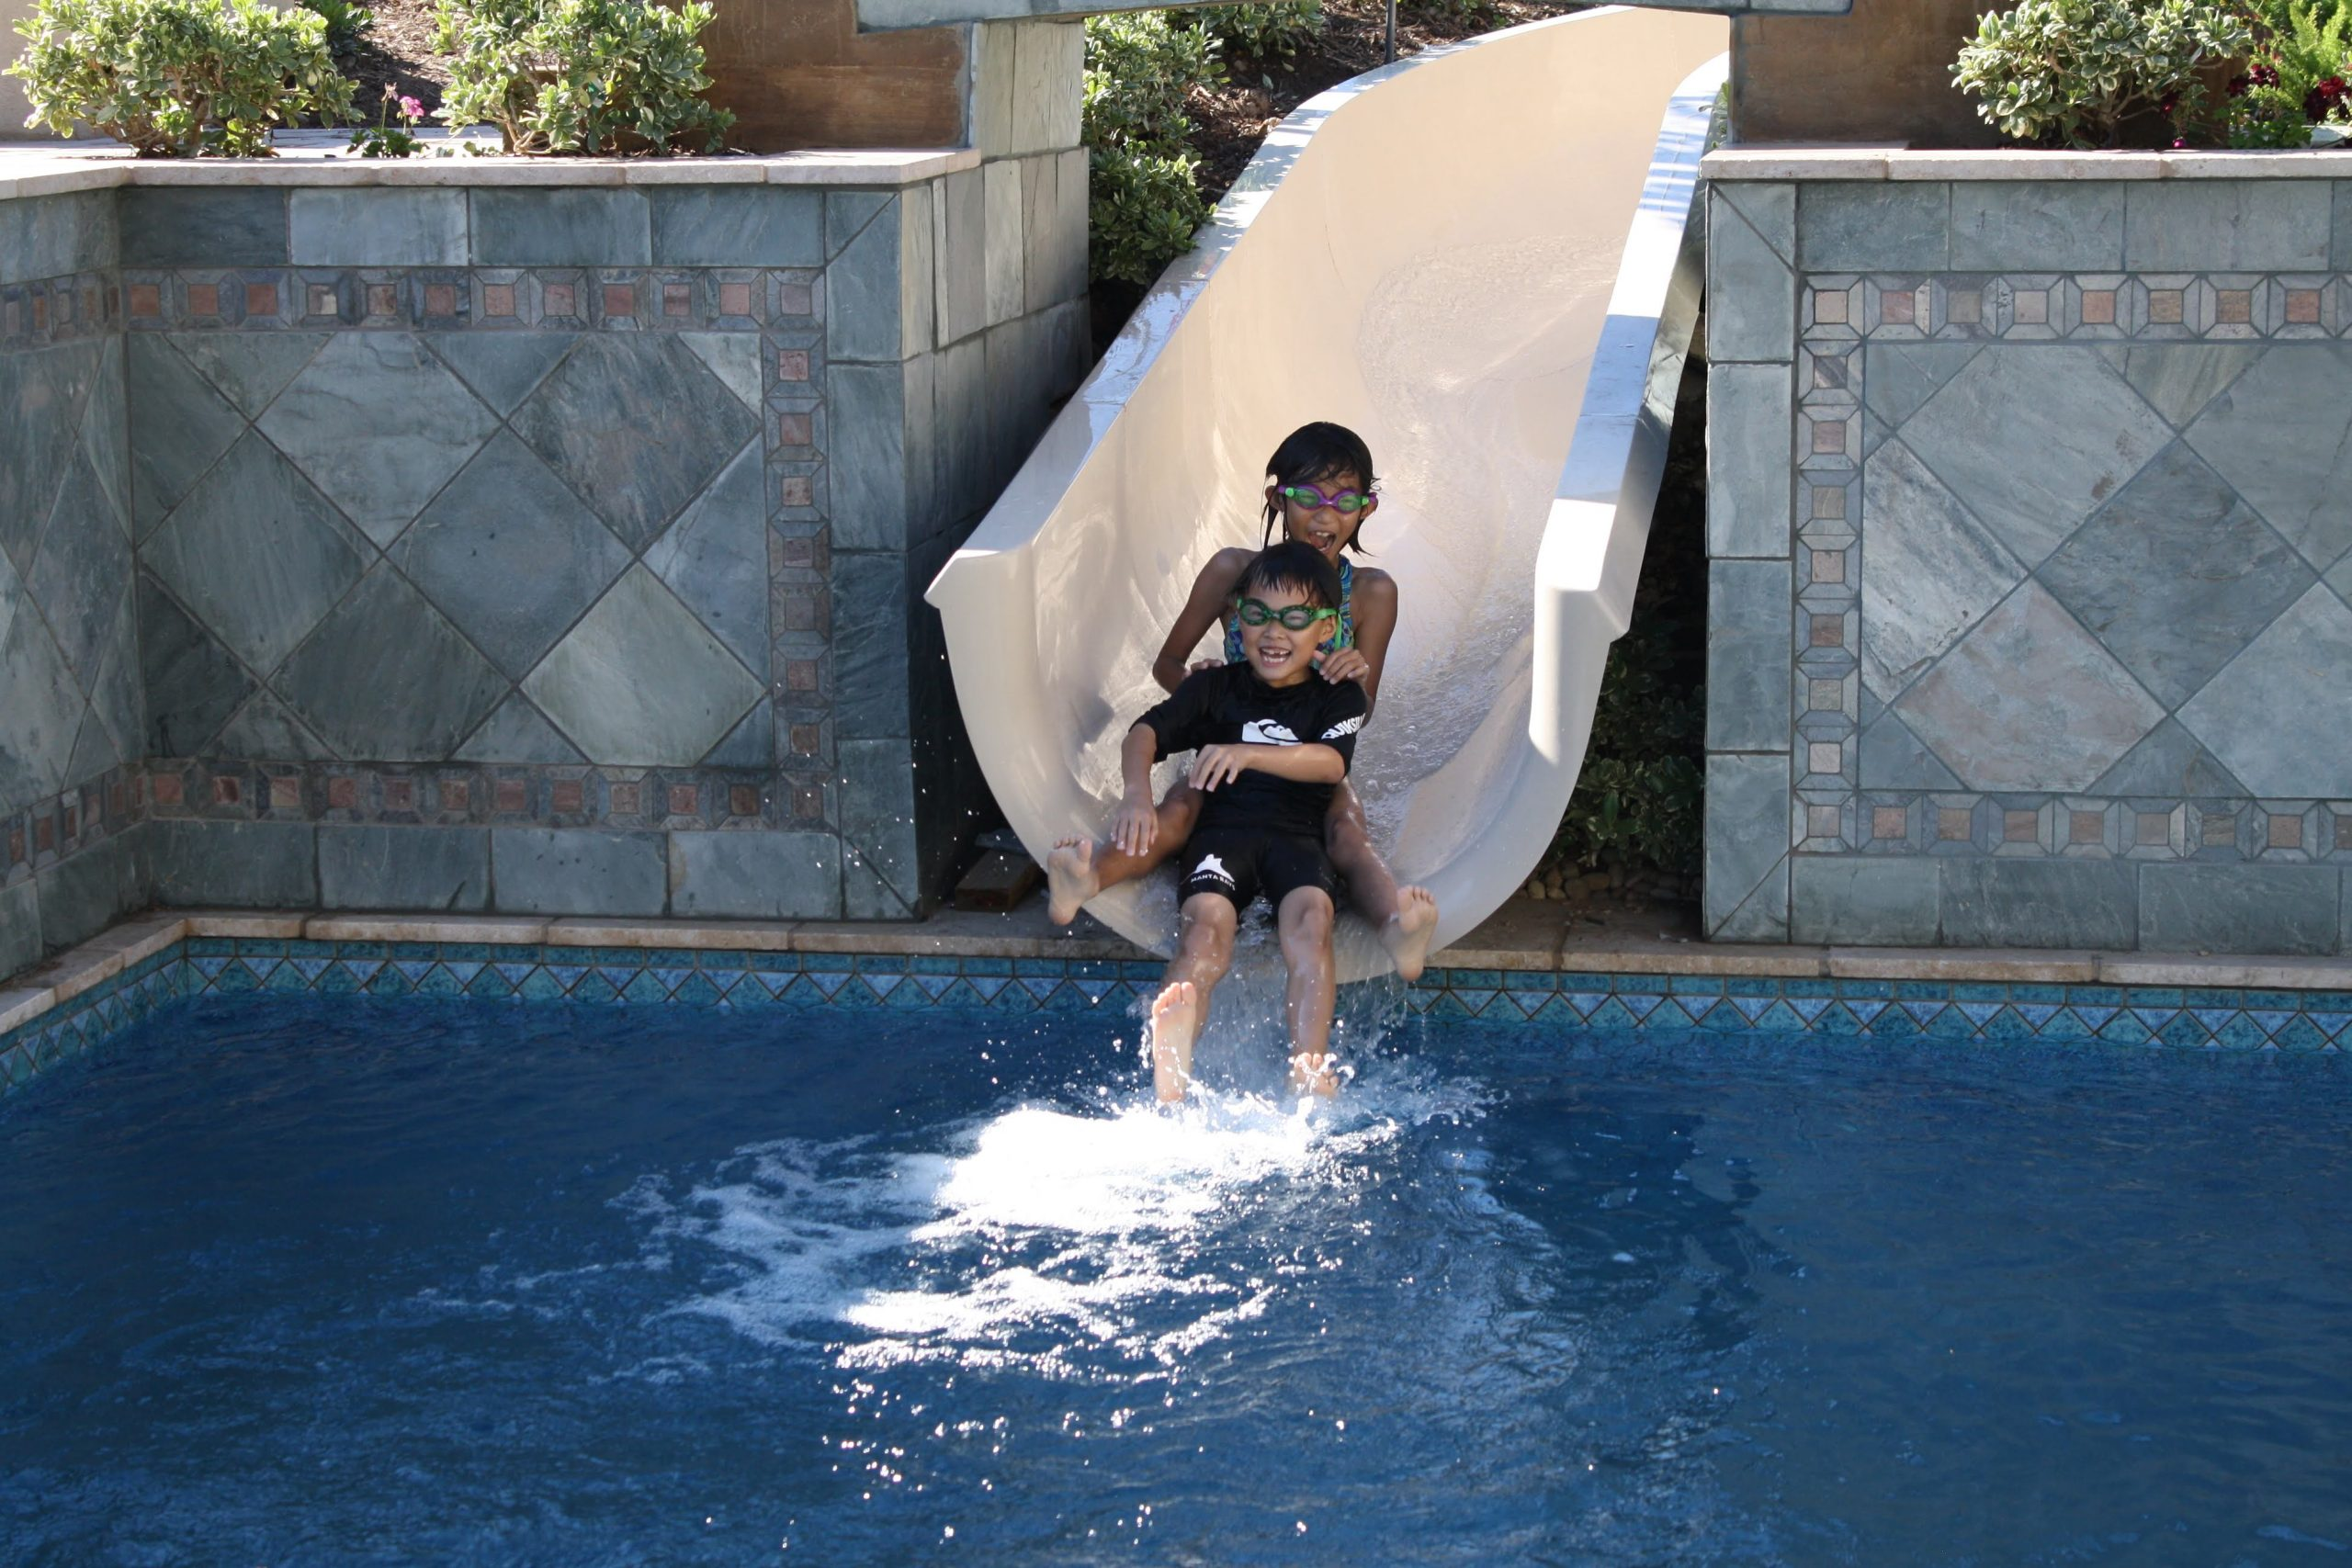 Two young boys enjoy sliding into the grandparents backyard pool